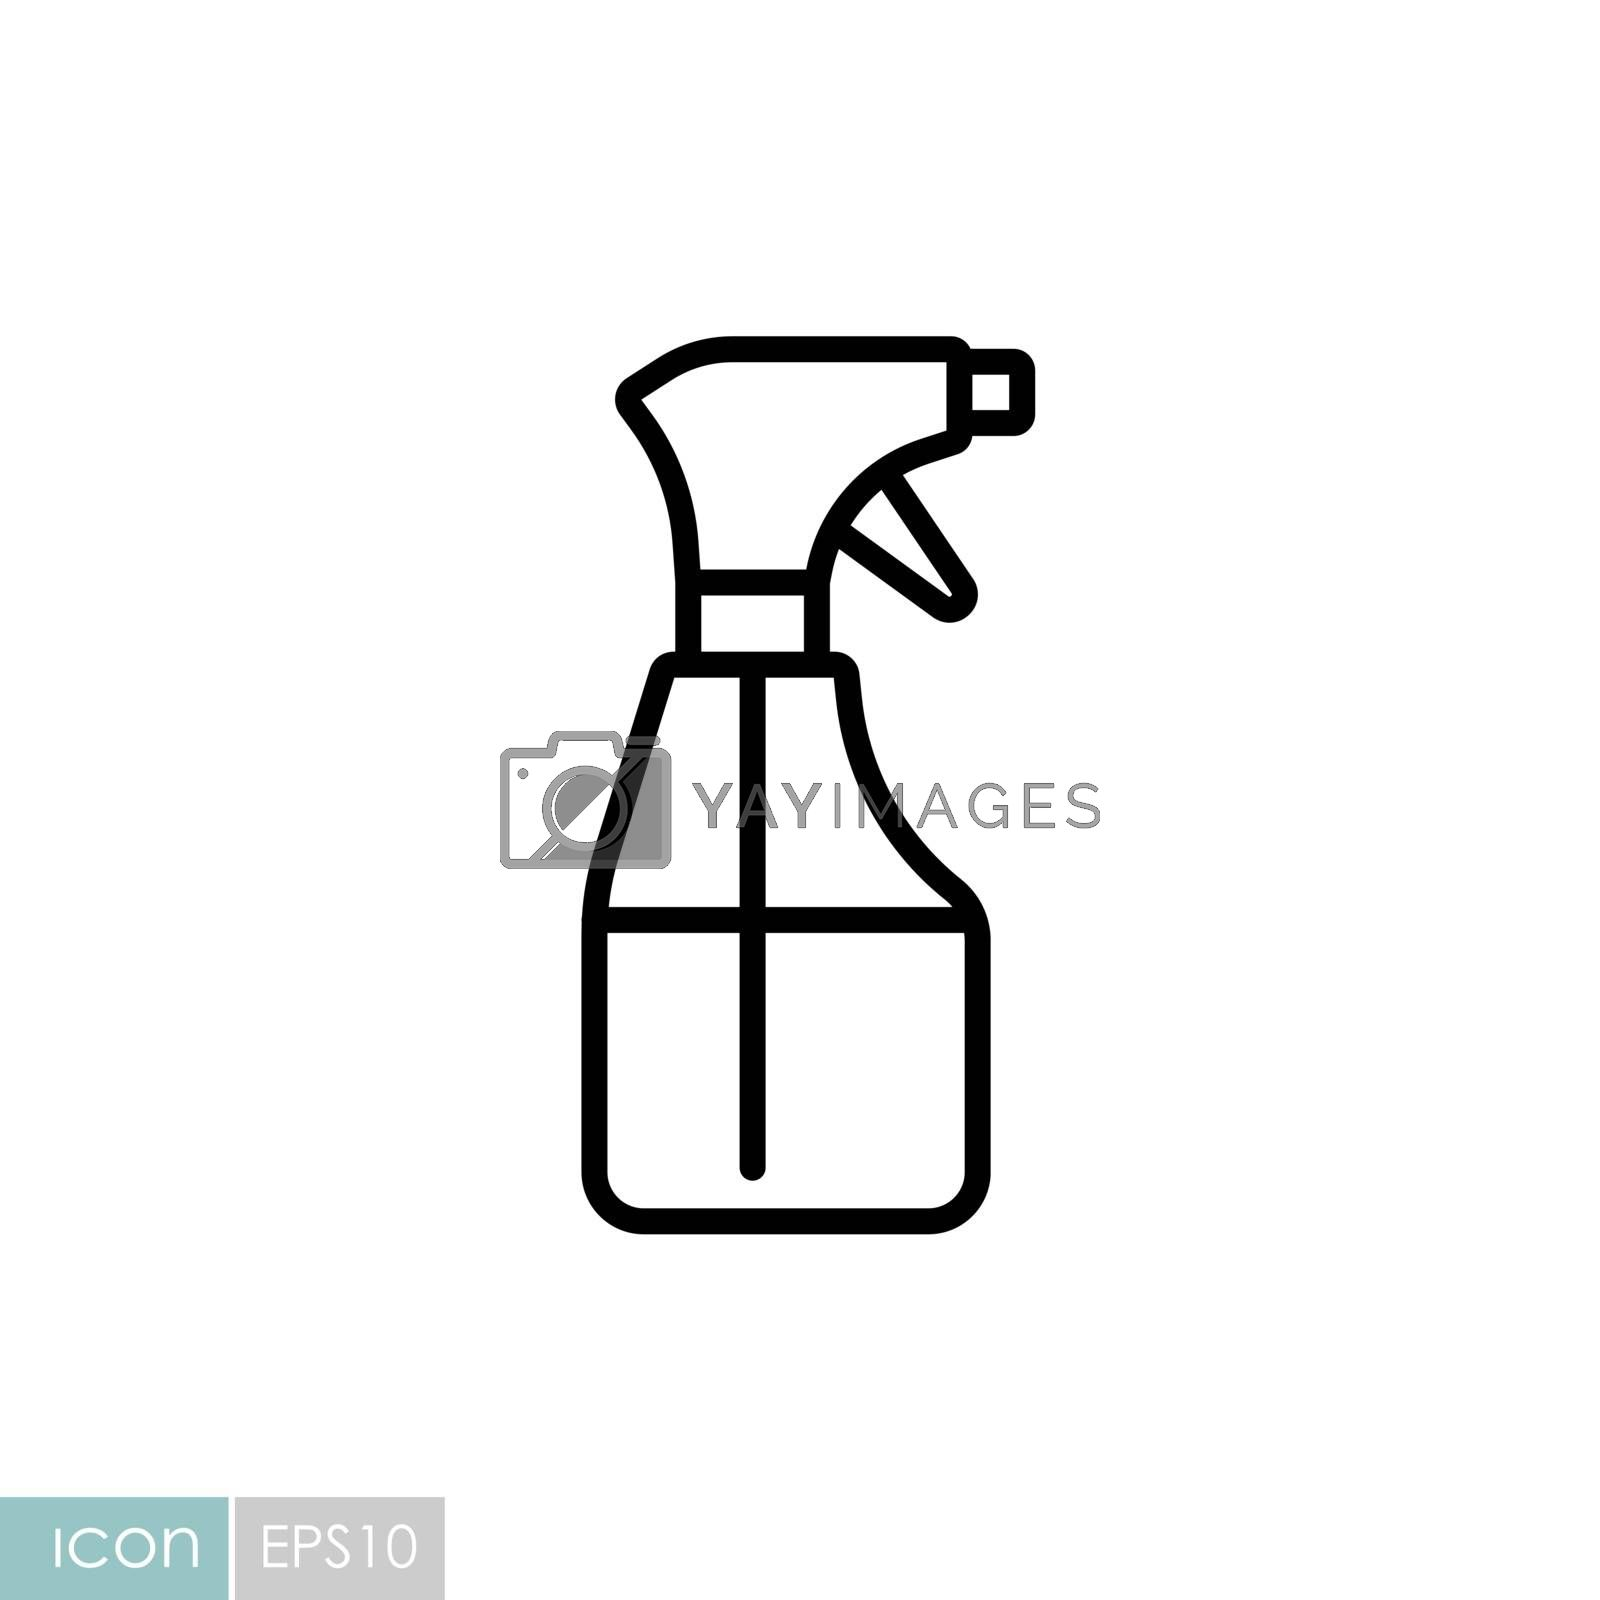 Cleaning spray bottle vector icon. Coronavirus. Graph symbol for medical web site and apps design, logo, app, UI